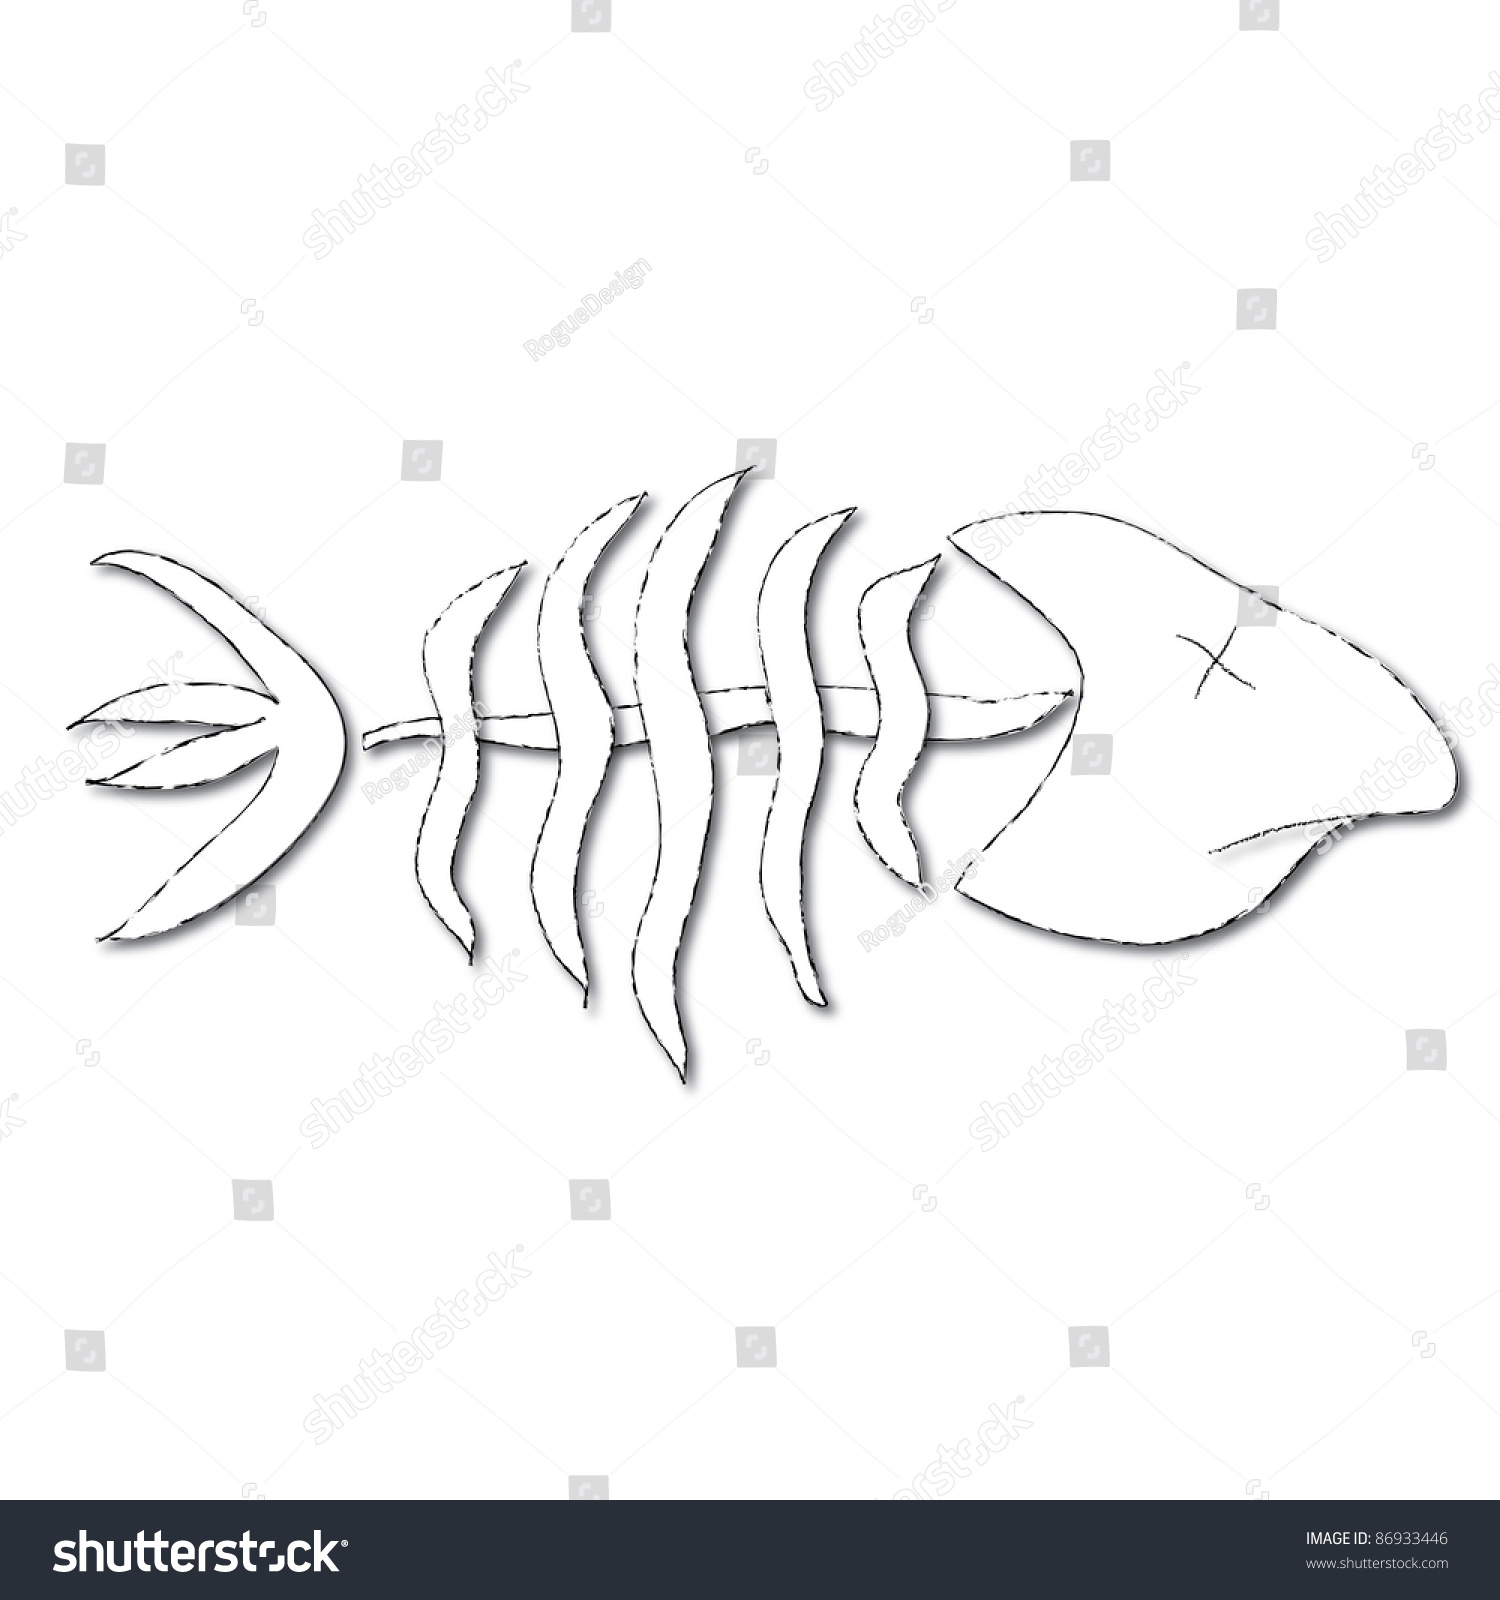 Clip Art Illustration Of Bones Of A Dead Fish. - 86933446 ...